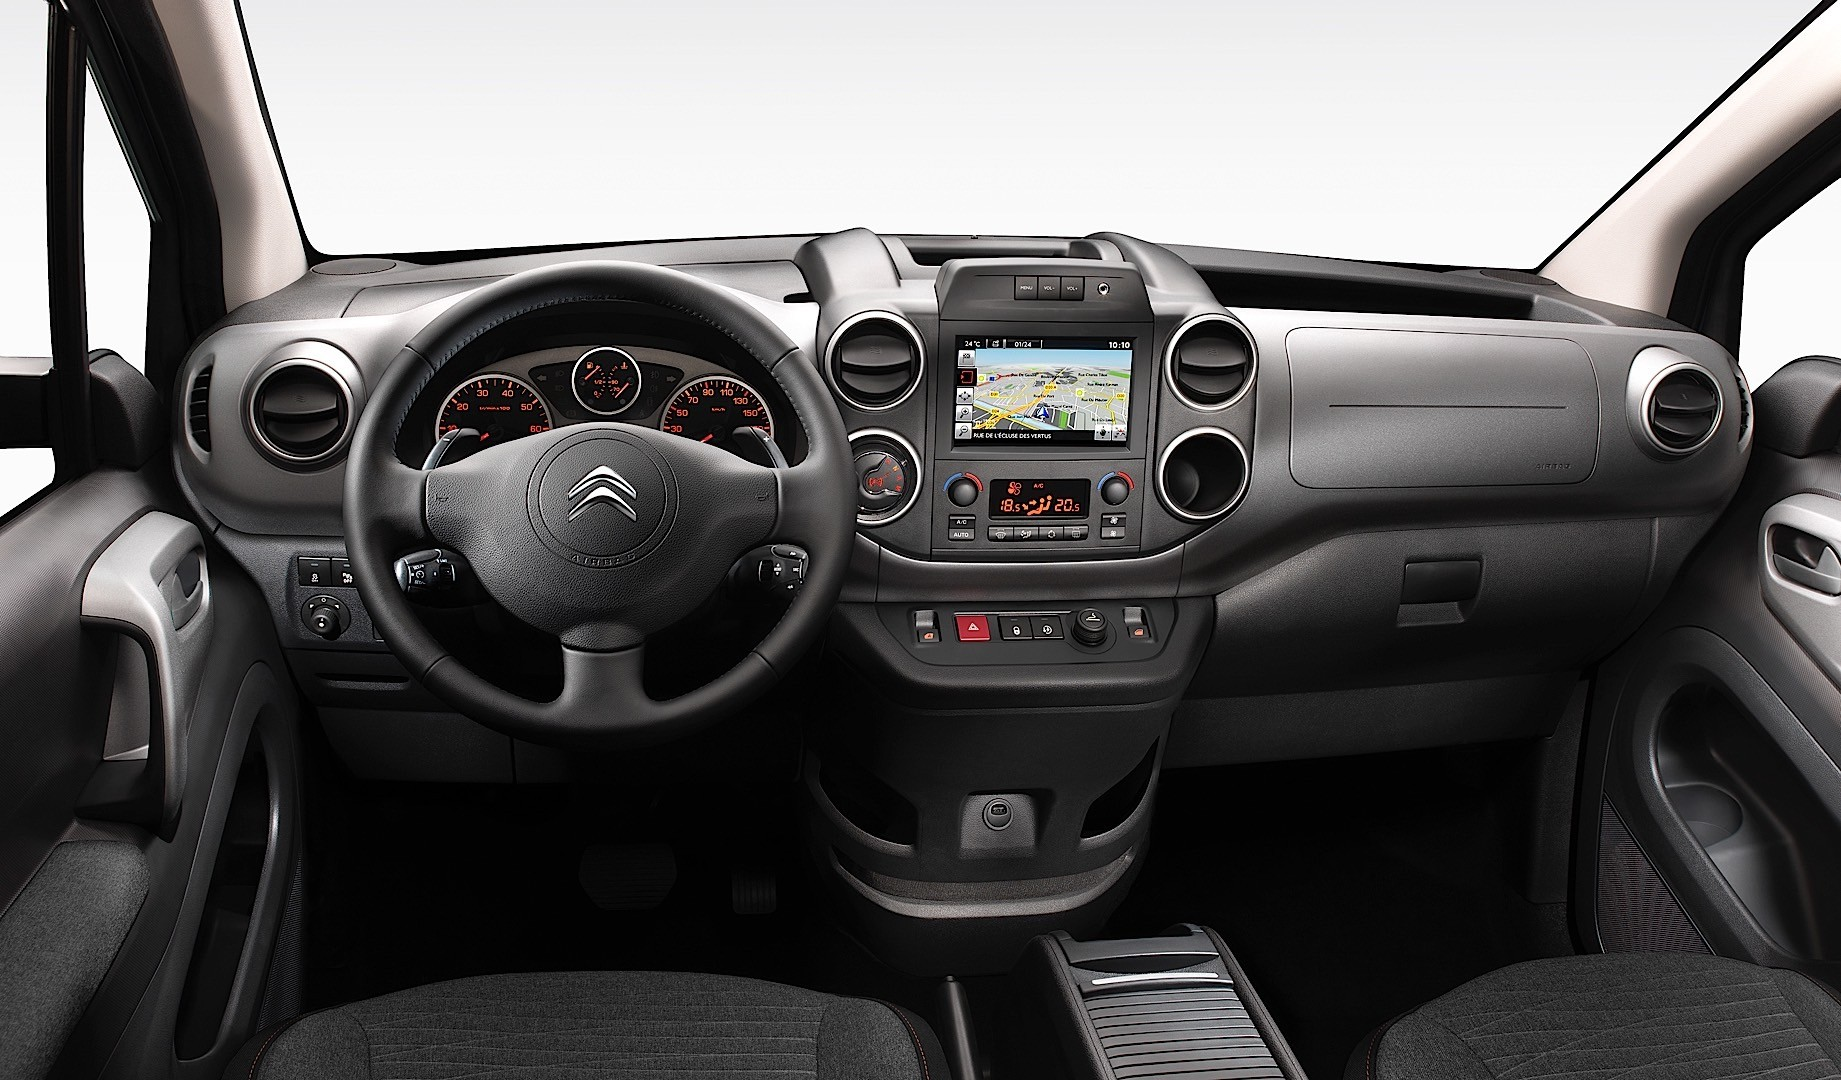 2012 Citroen Berlingo #24